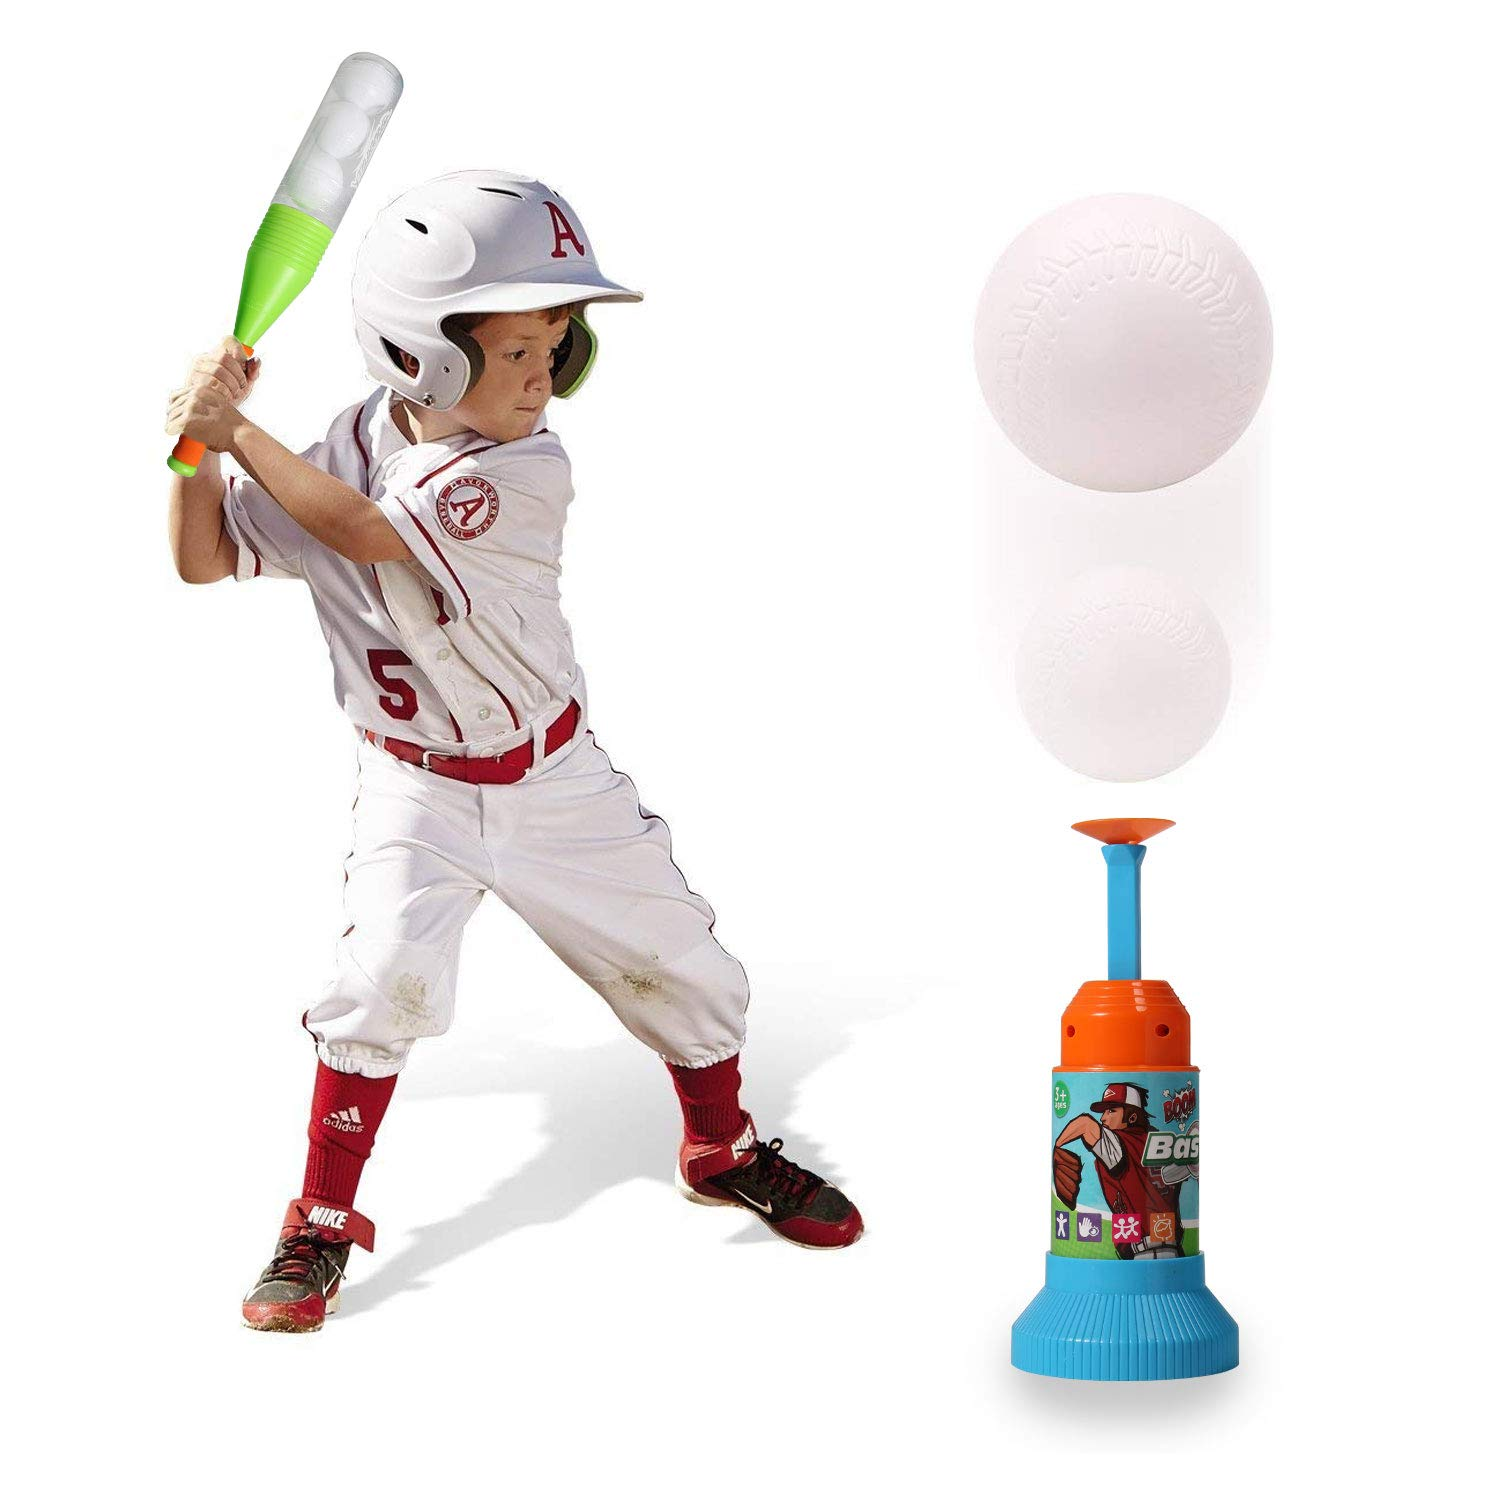 EXERCISE N PLAY Training Automatic Launcher Baseball Bat Toys - Indoor Outdoor Sports Baseball Games T-Ball Set for Children by EXERCISE N PLAY